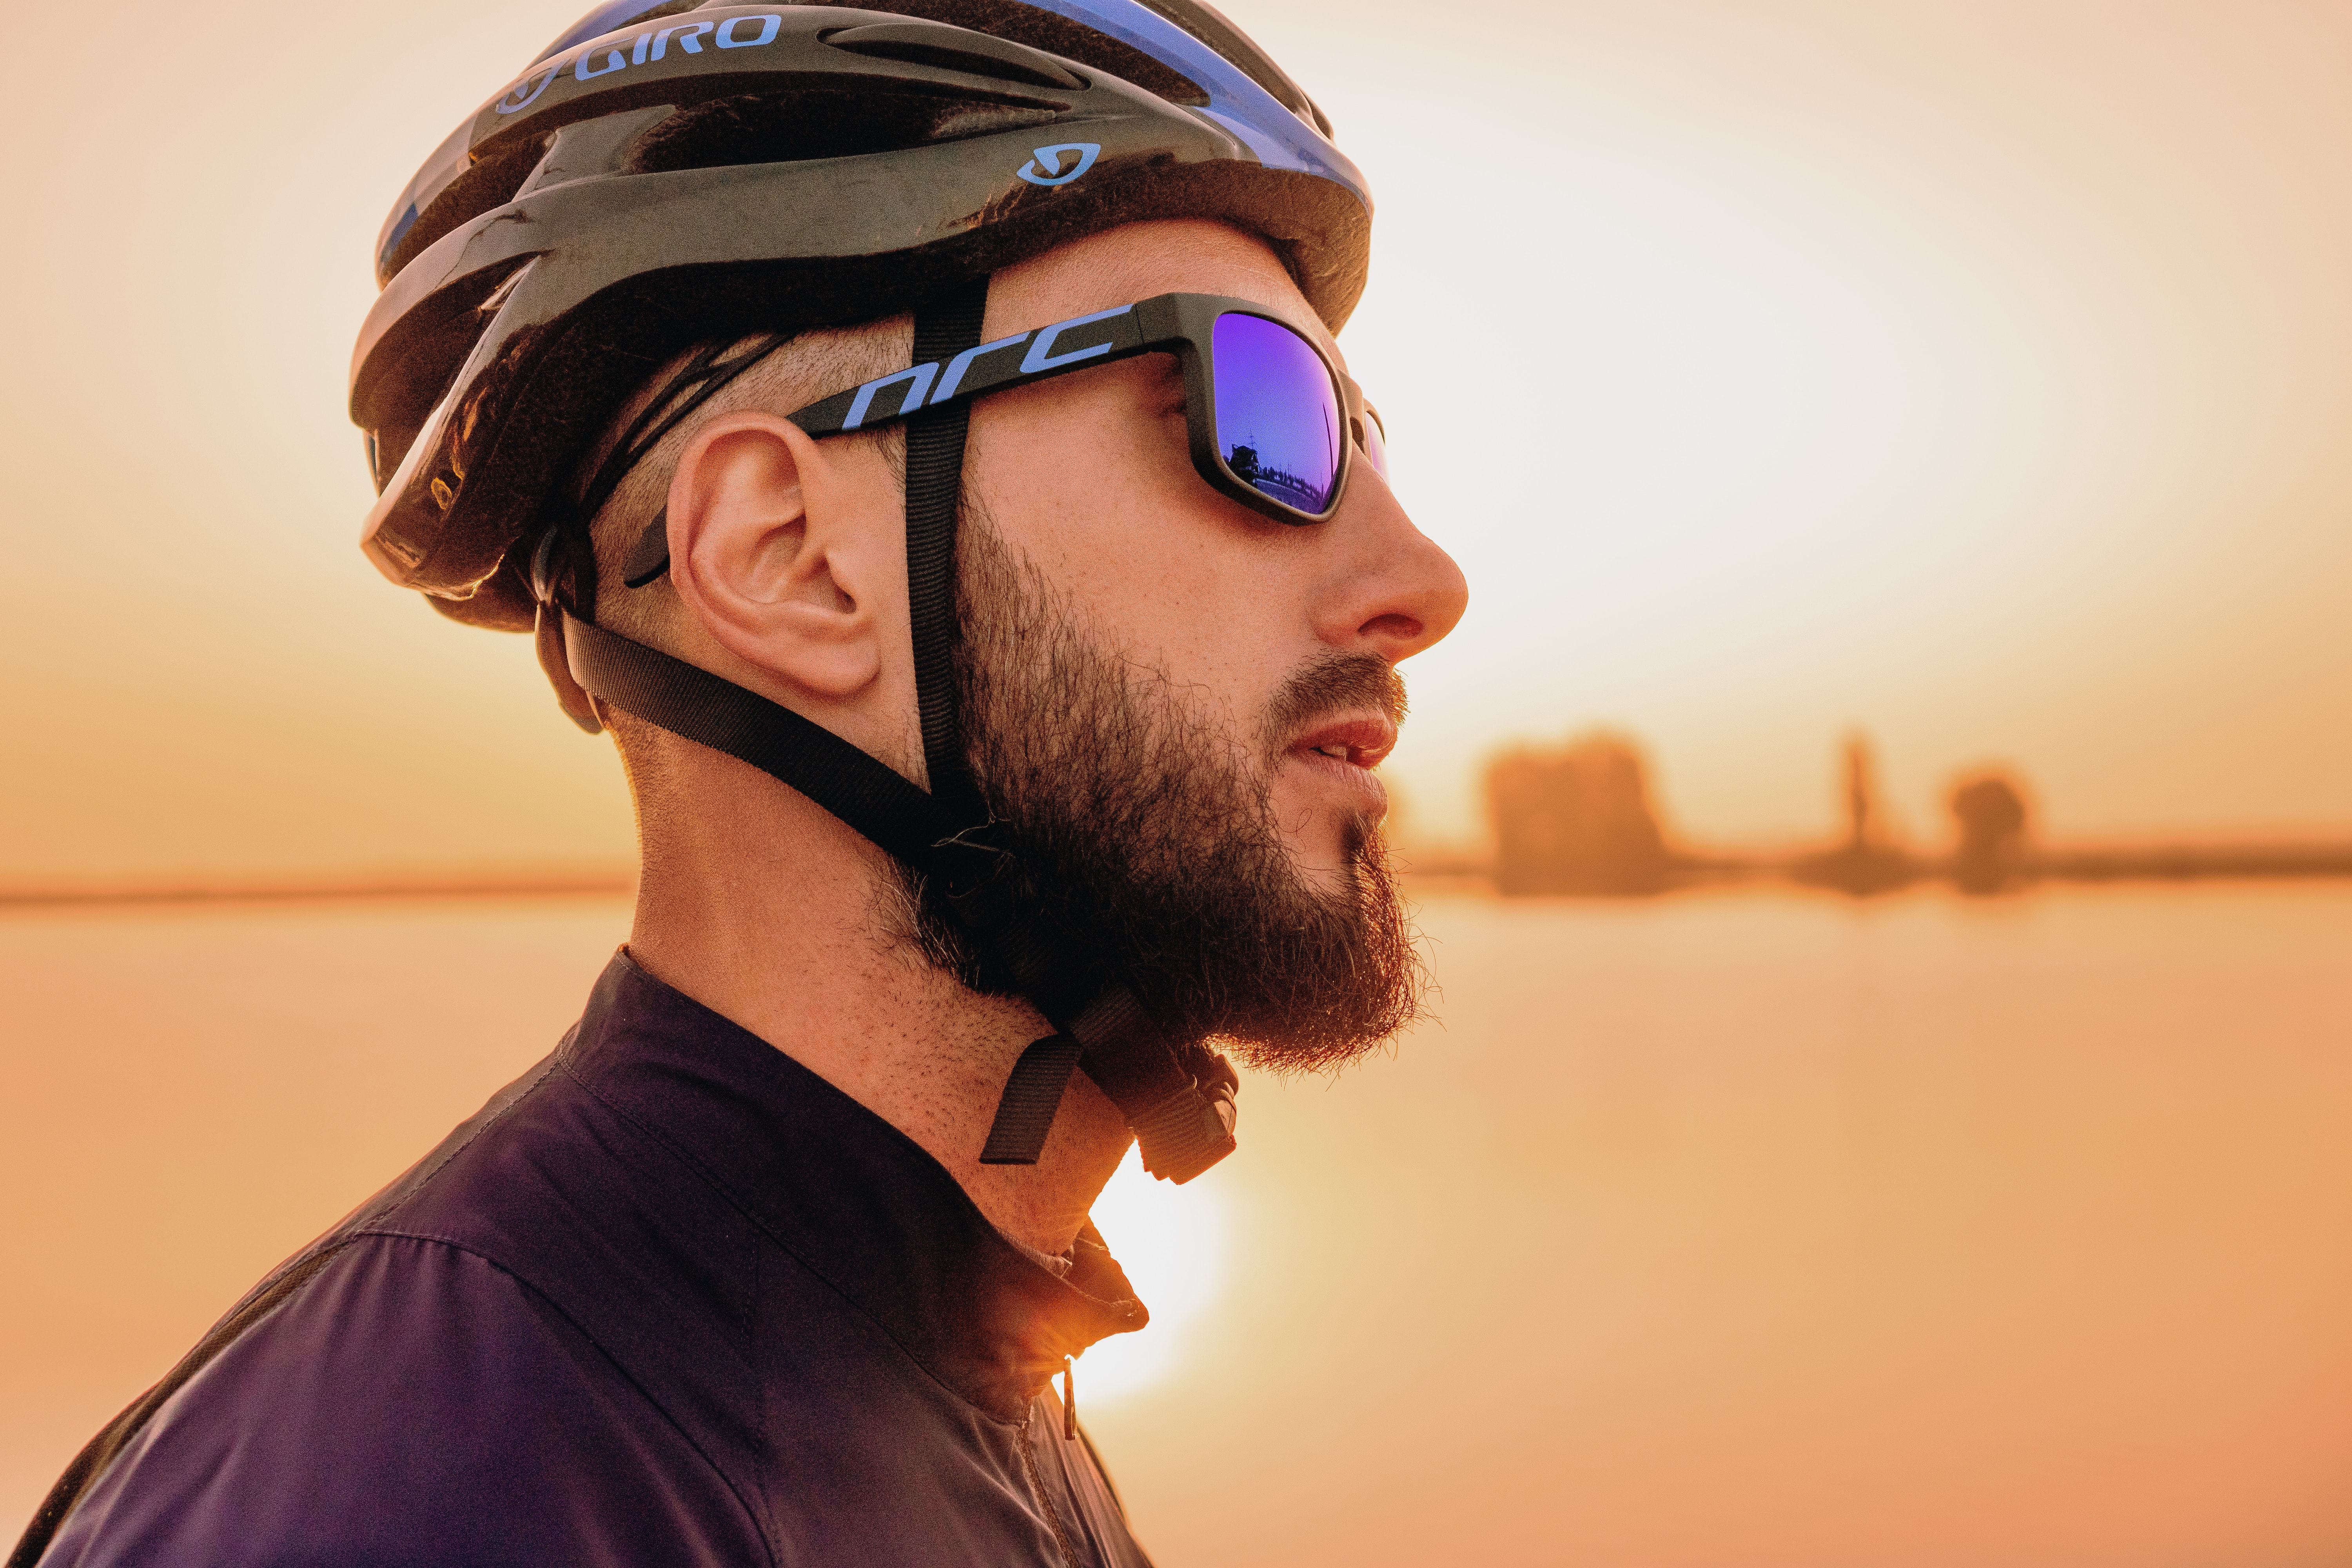 man wearing black bike helmet